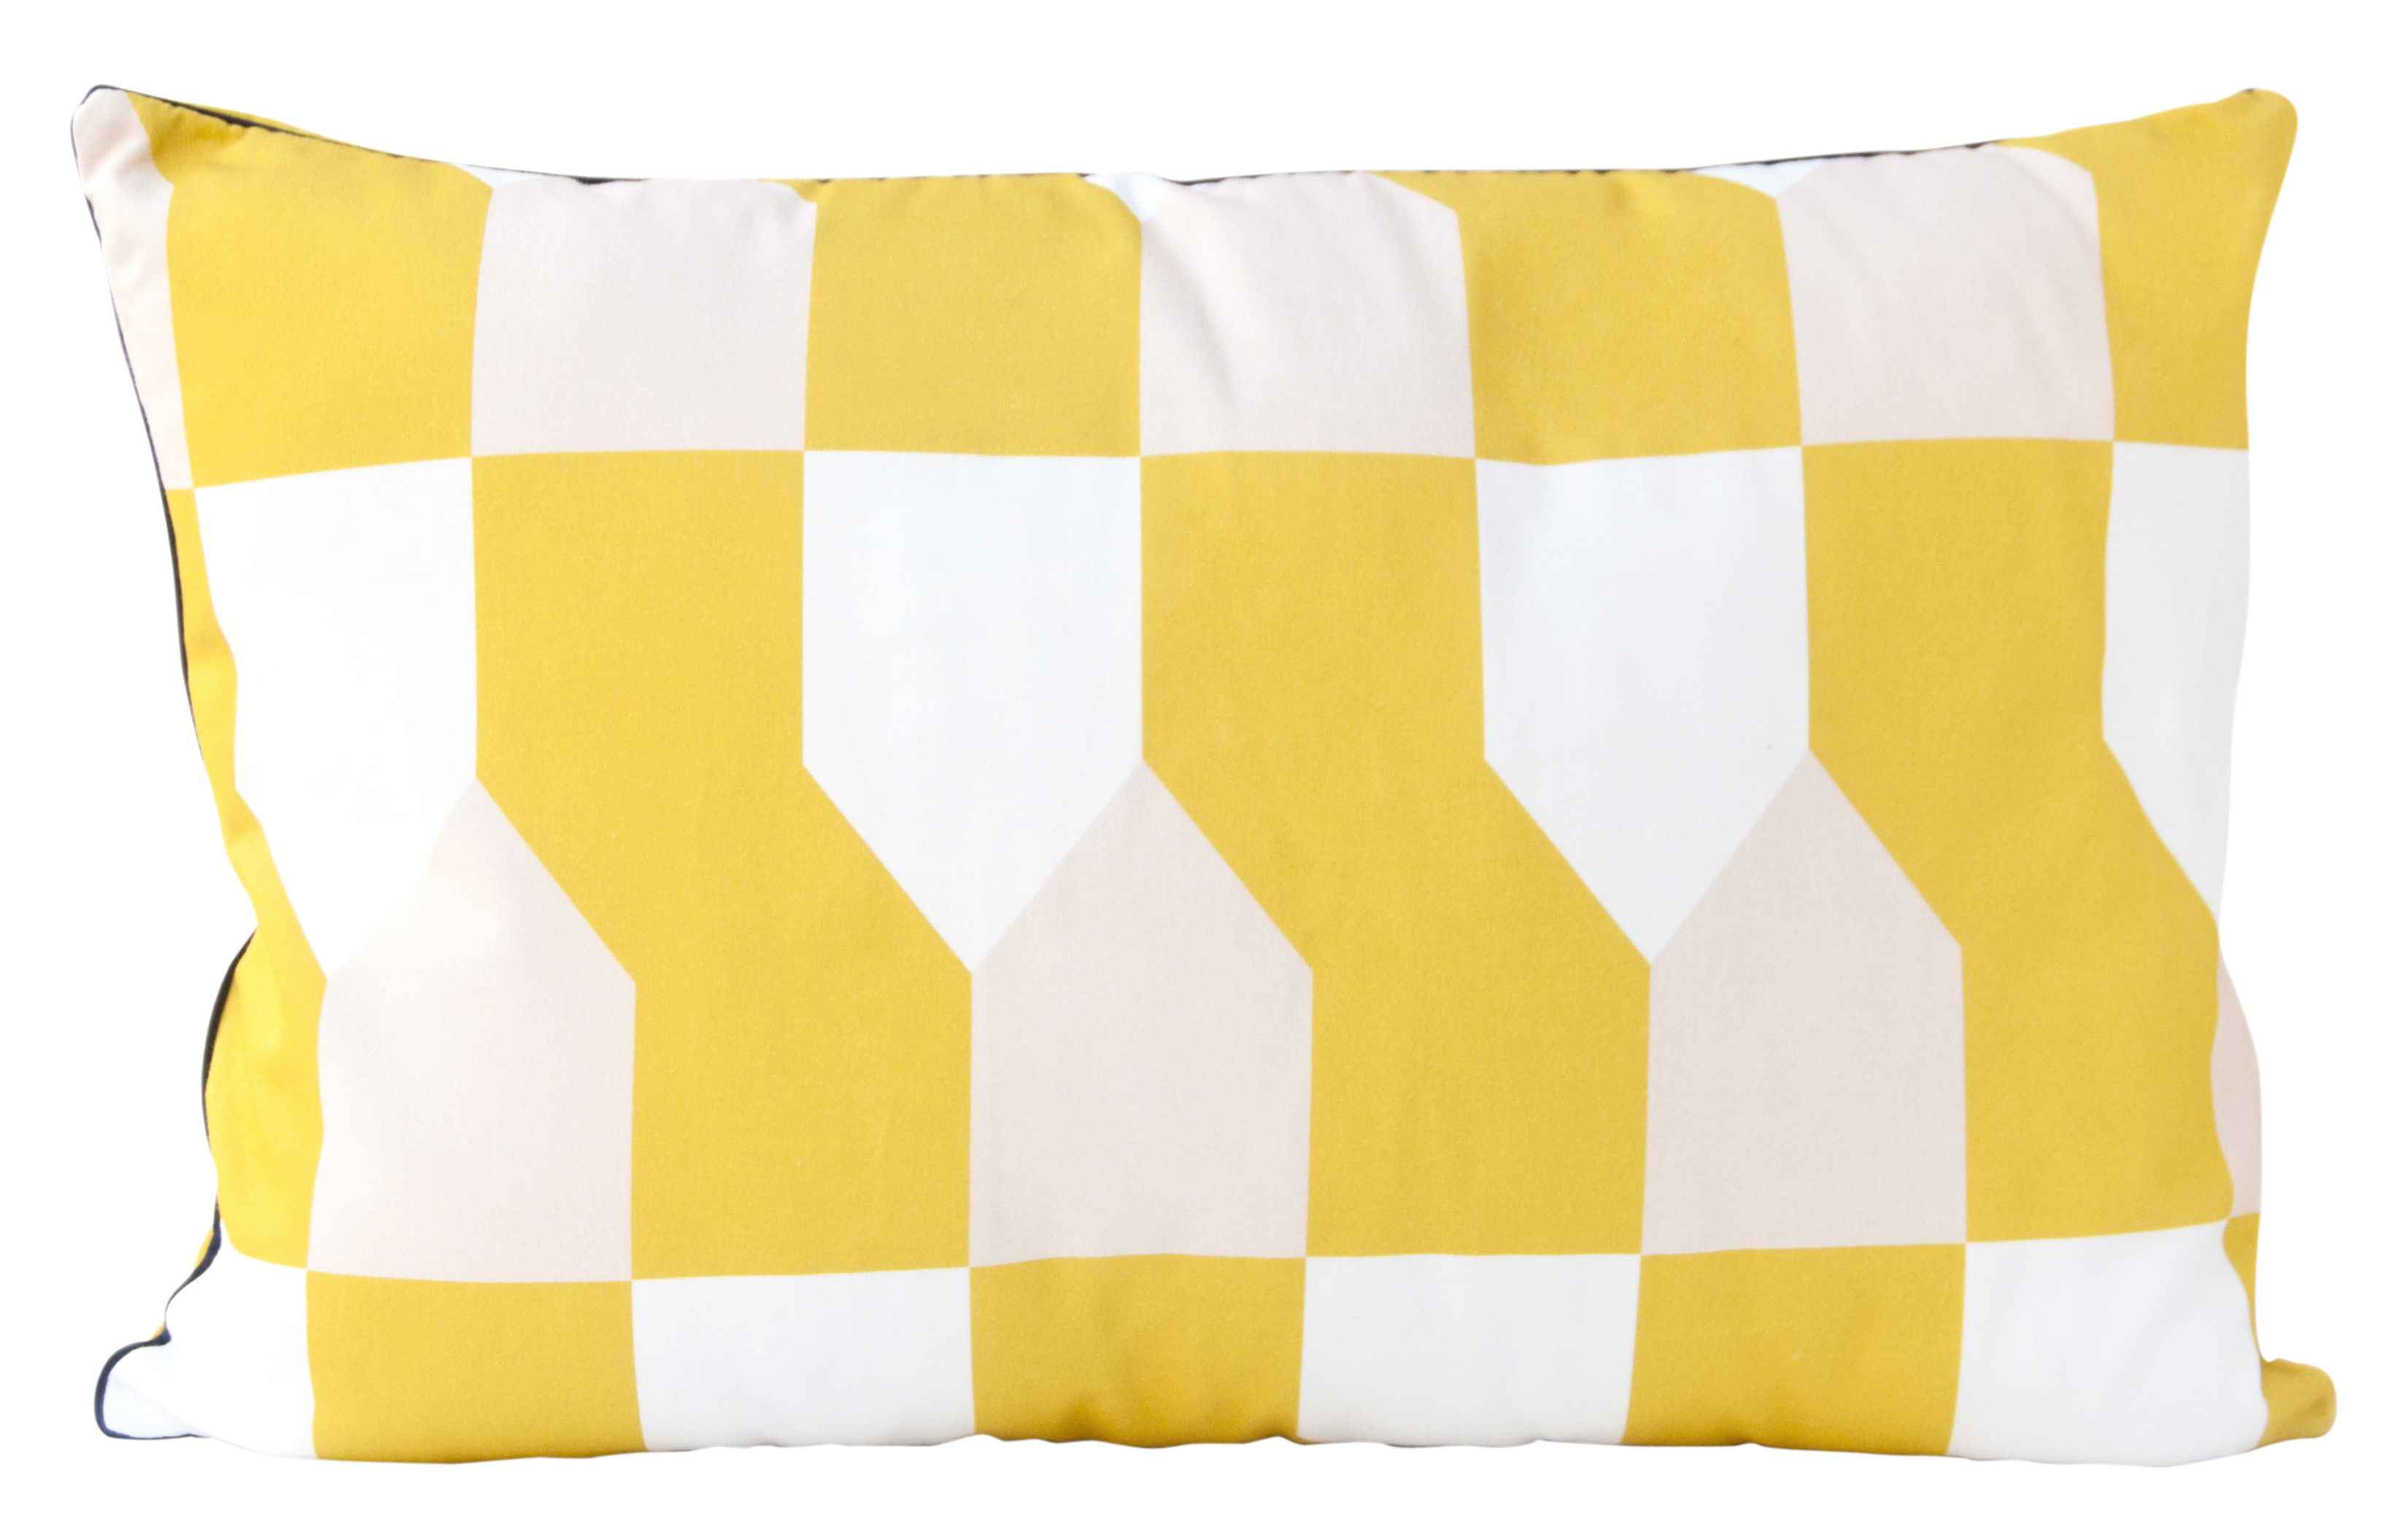 coussin octave / 60 x 40 cm jaune moutarde - hartô | made in design